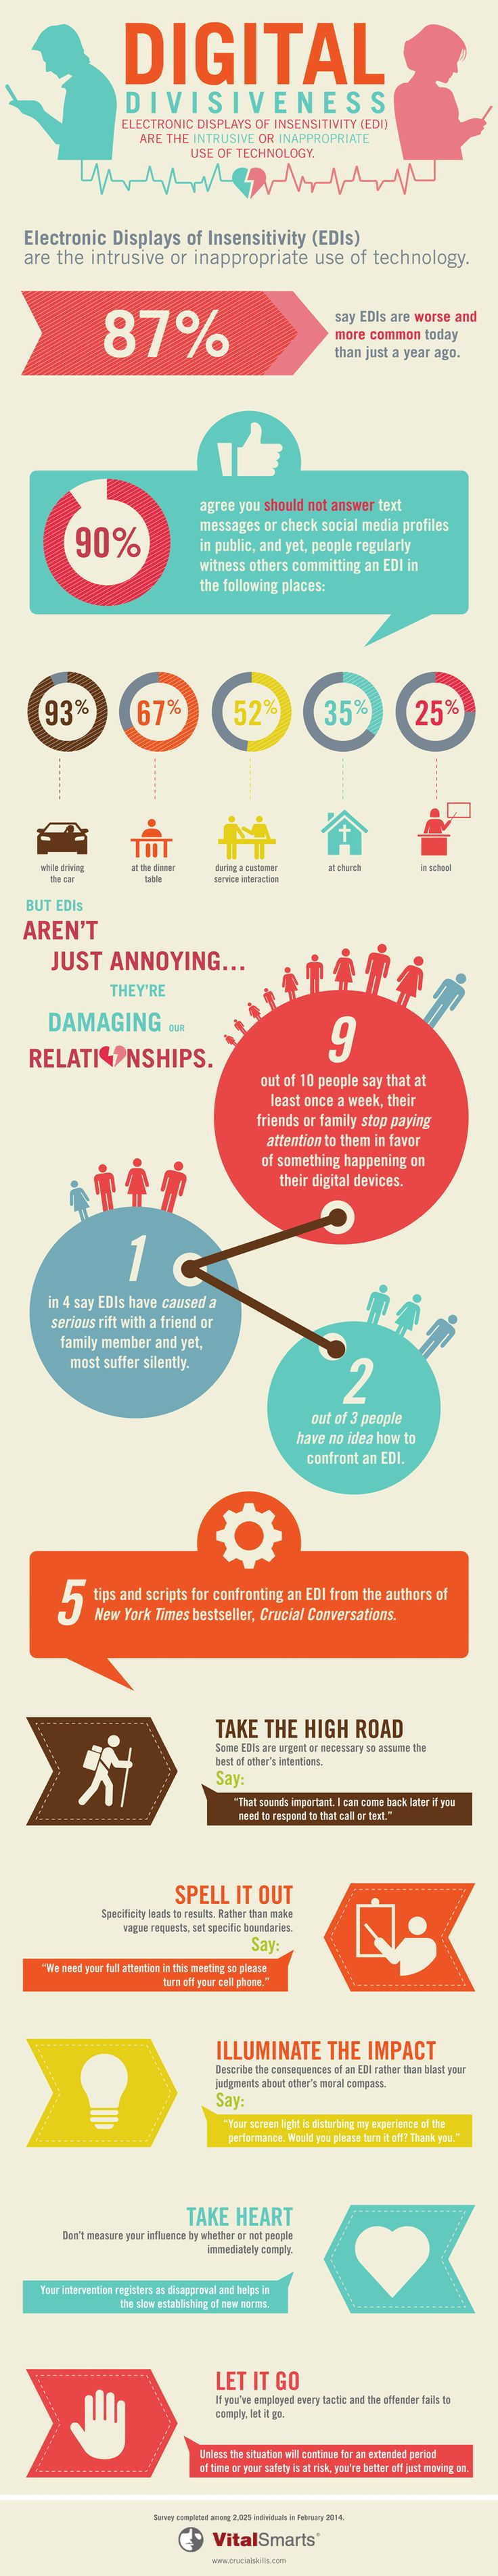 Discover what EDIs (Electronic Displays of Insensitivity) are and why they're bad for relationships